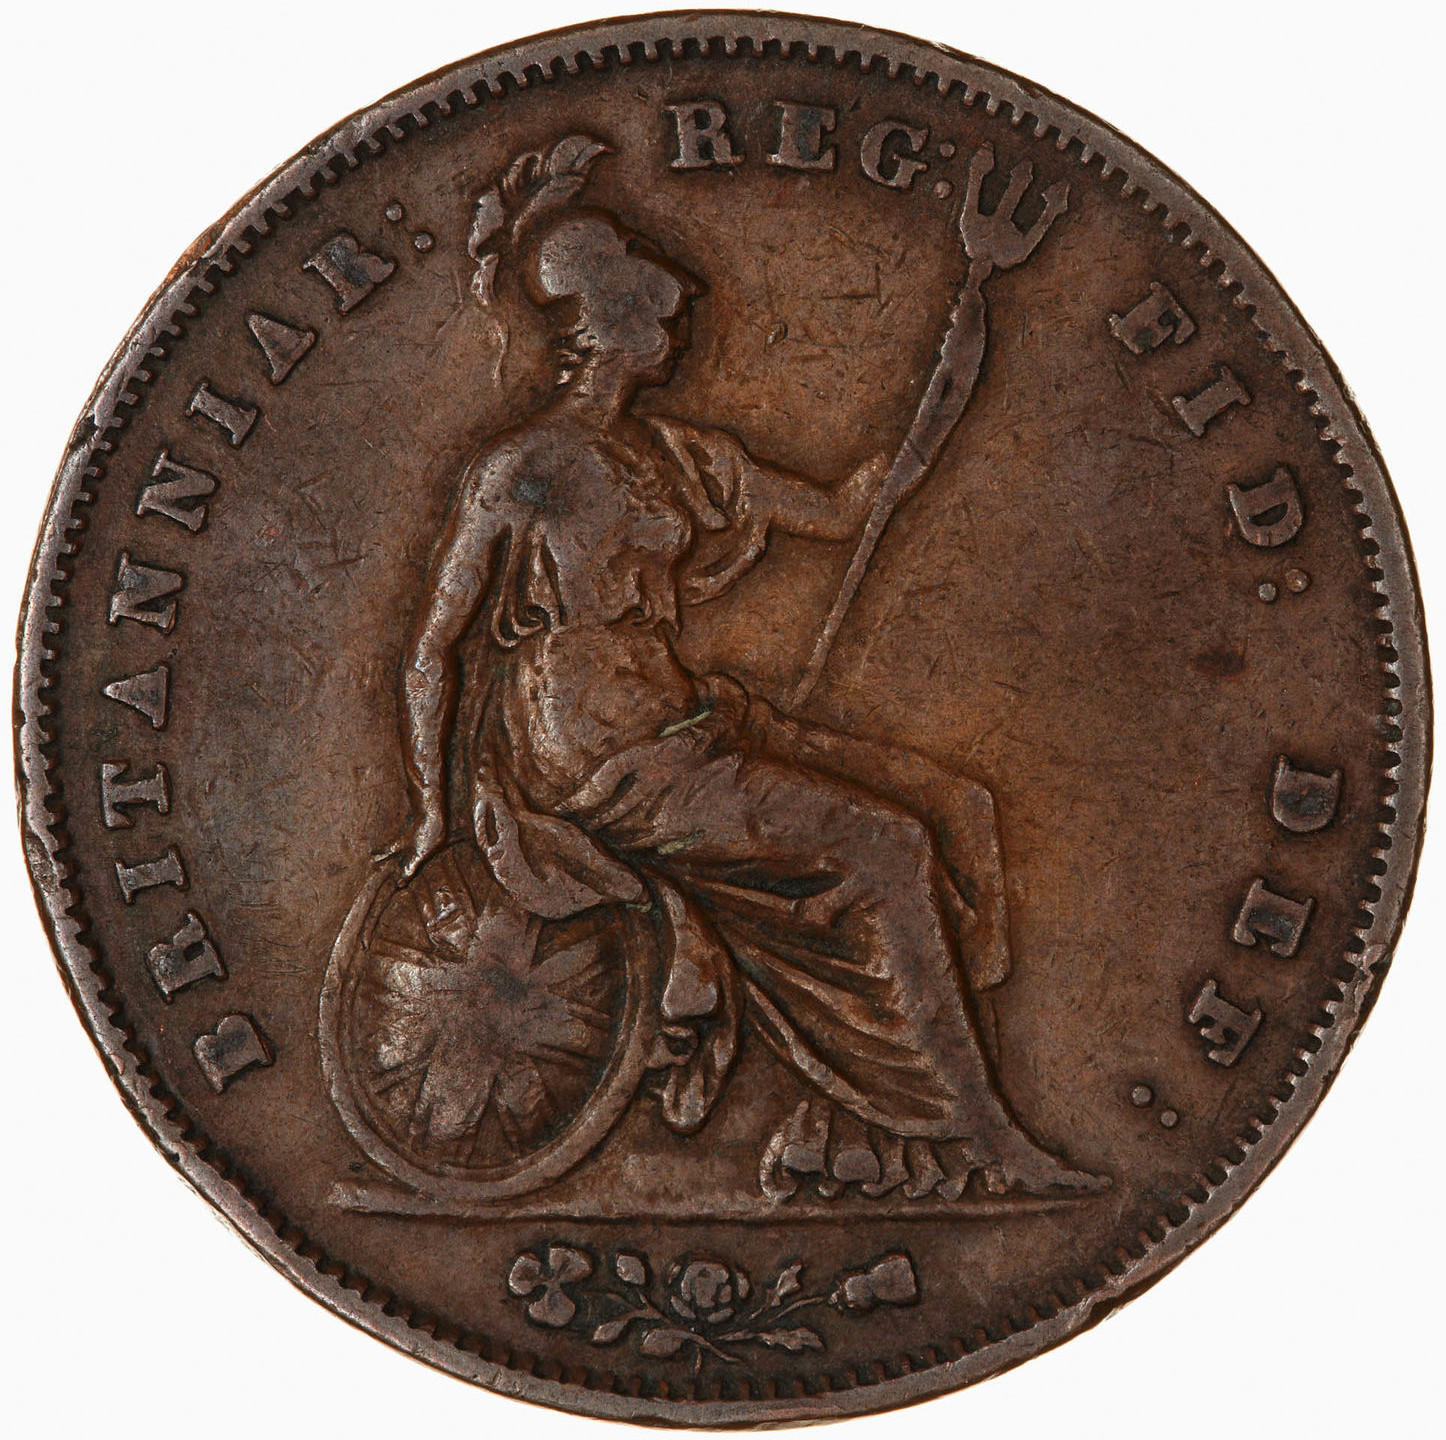 Penny 1855: Photo Coin - Penny, Queen Victoria, Great Britain, 1855